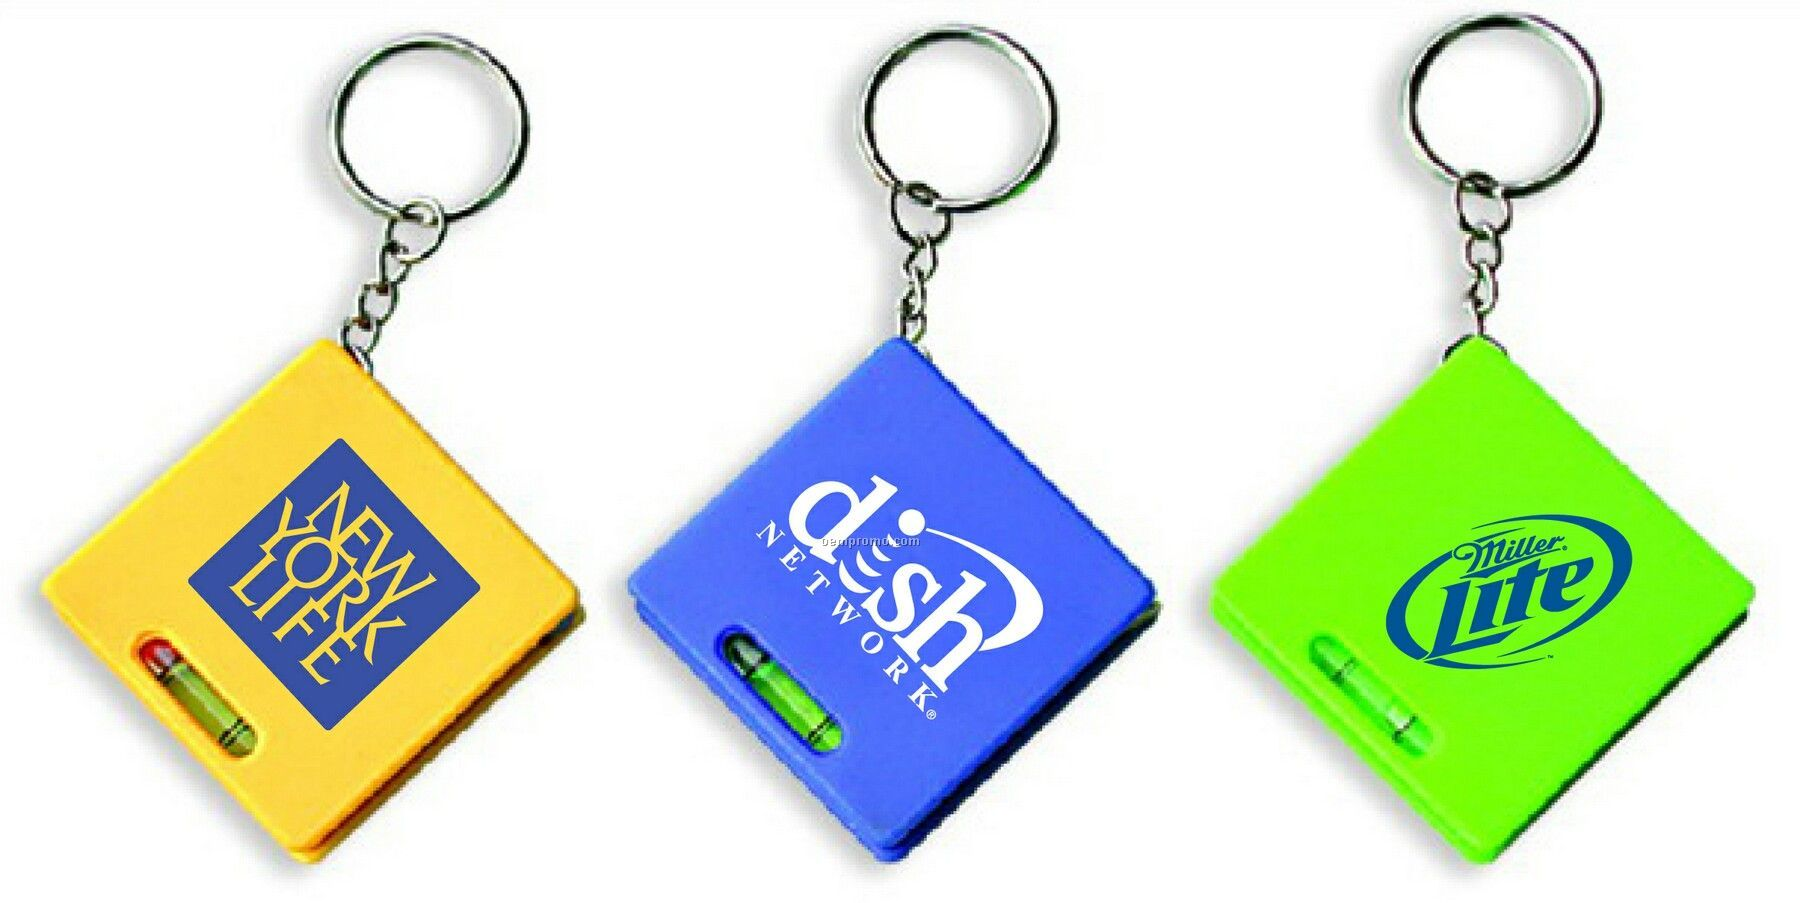 Square Tape Measure With Level And Key Chain